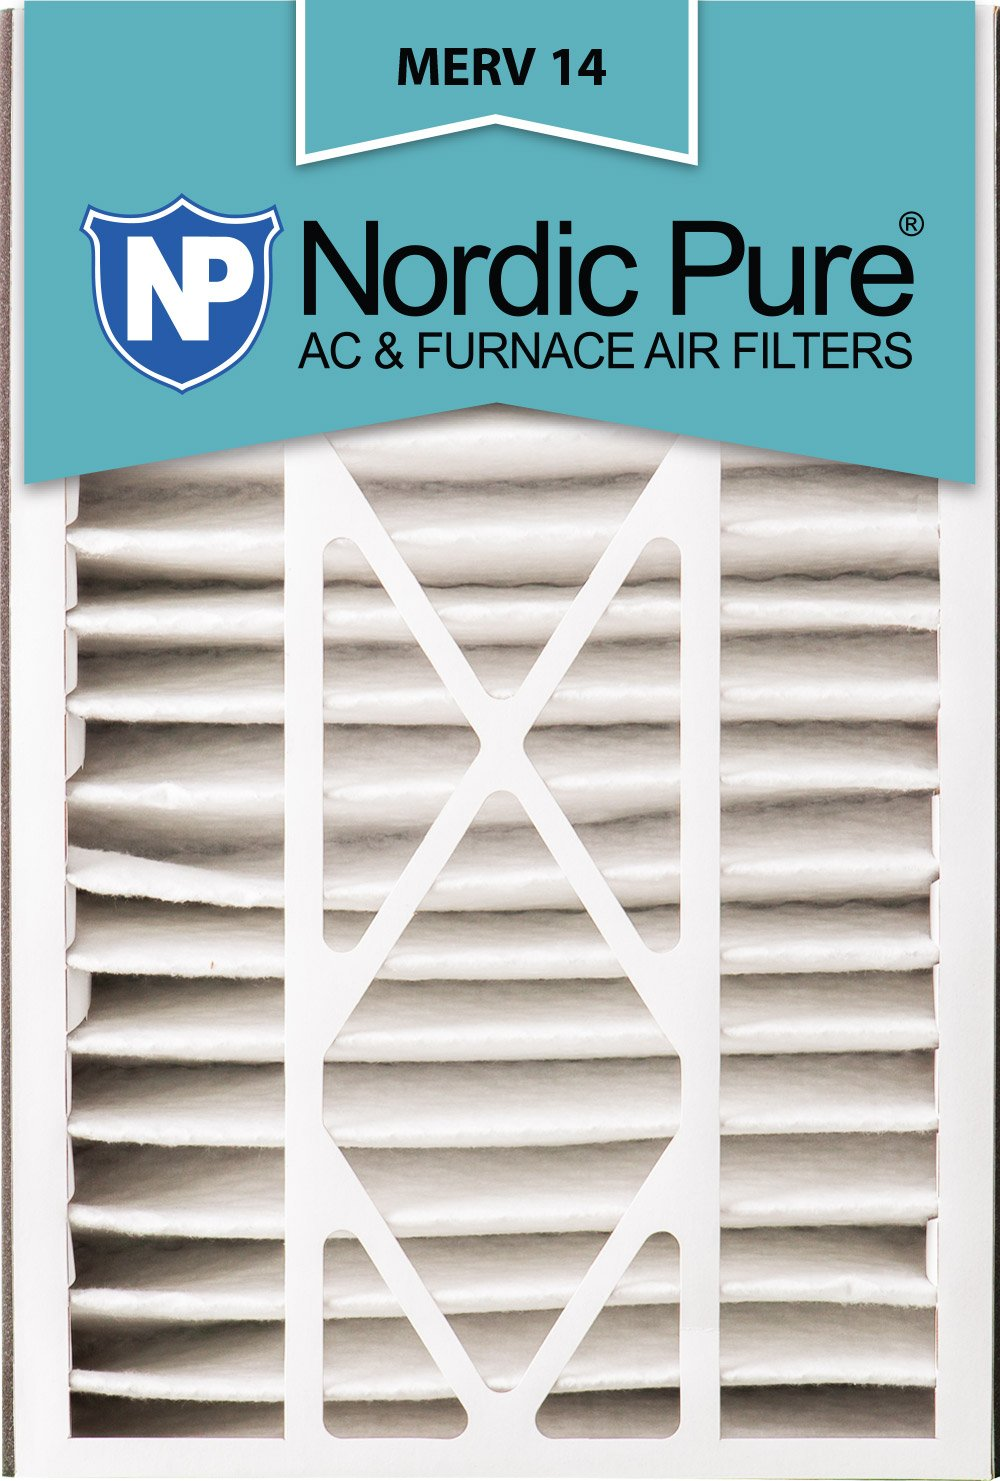 MERV 14 Trion Bear 266649-105 Replacement Pleated AC Furnace Air Filter 4-7//8 Actual Depth Nordic Pure 16x25x5 2 Pack